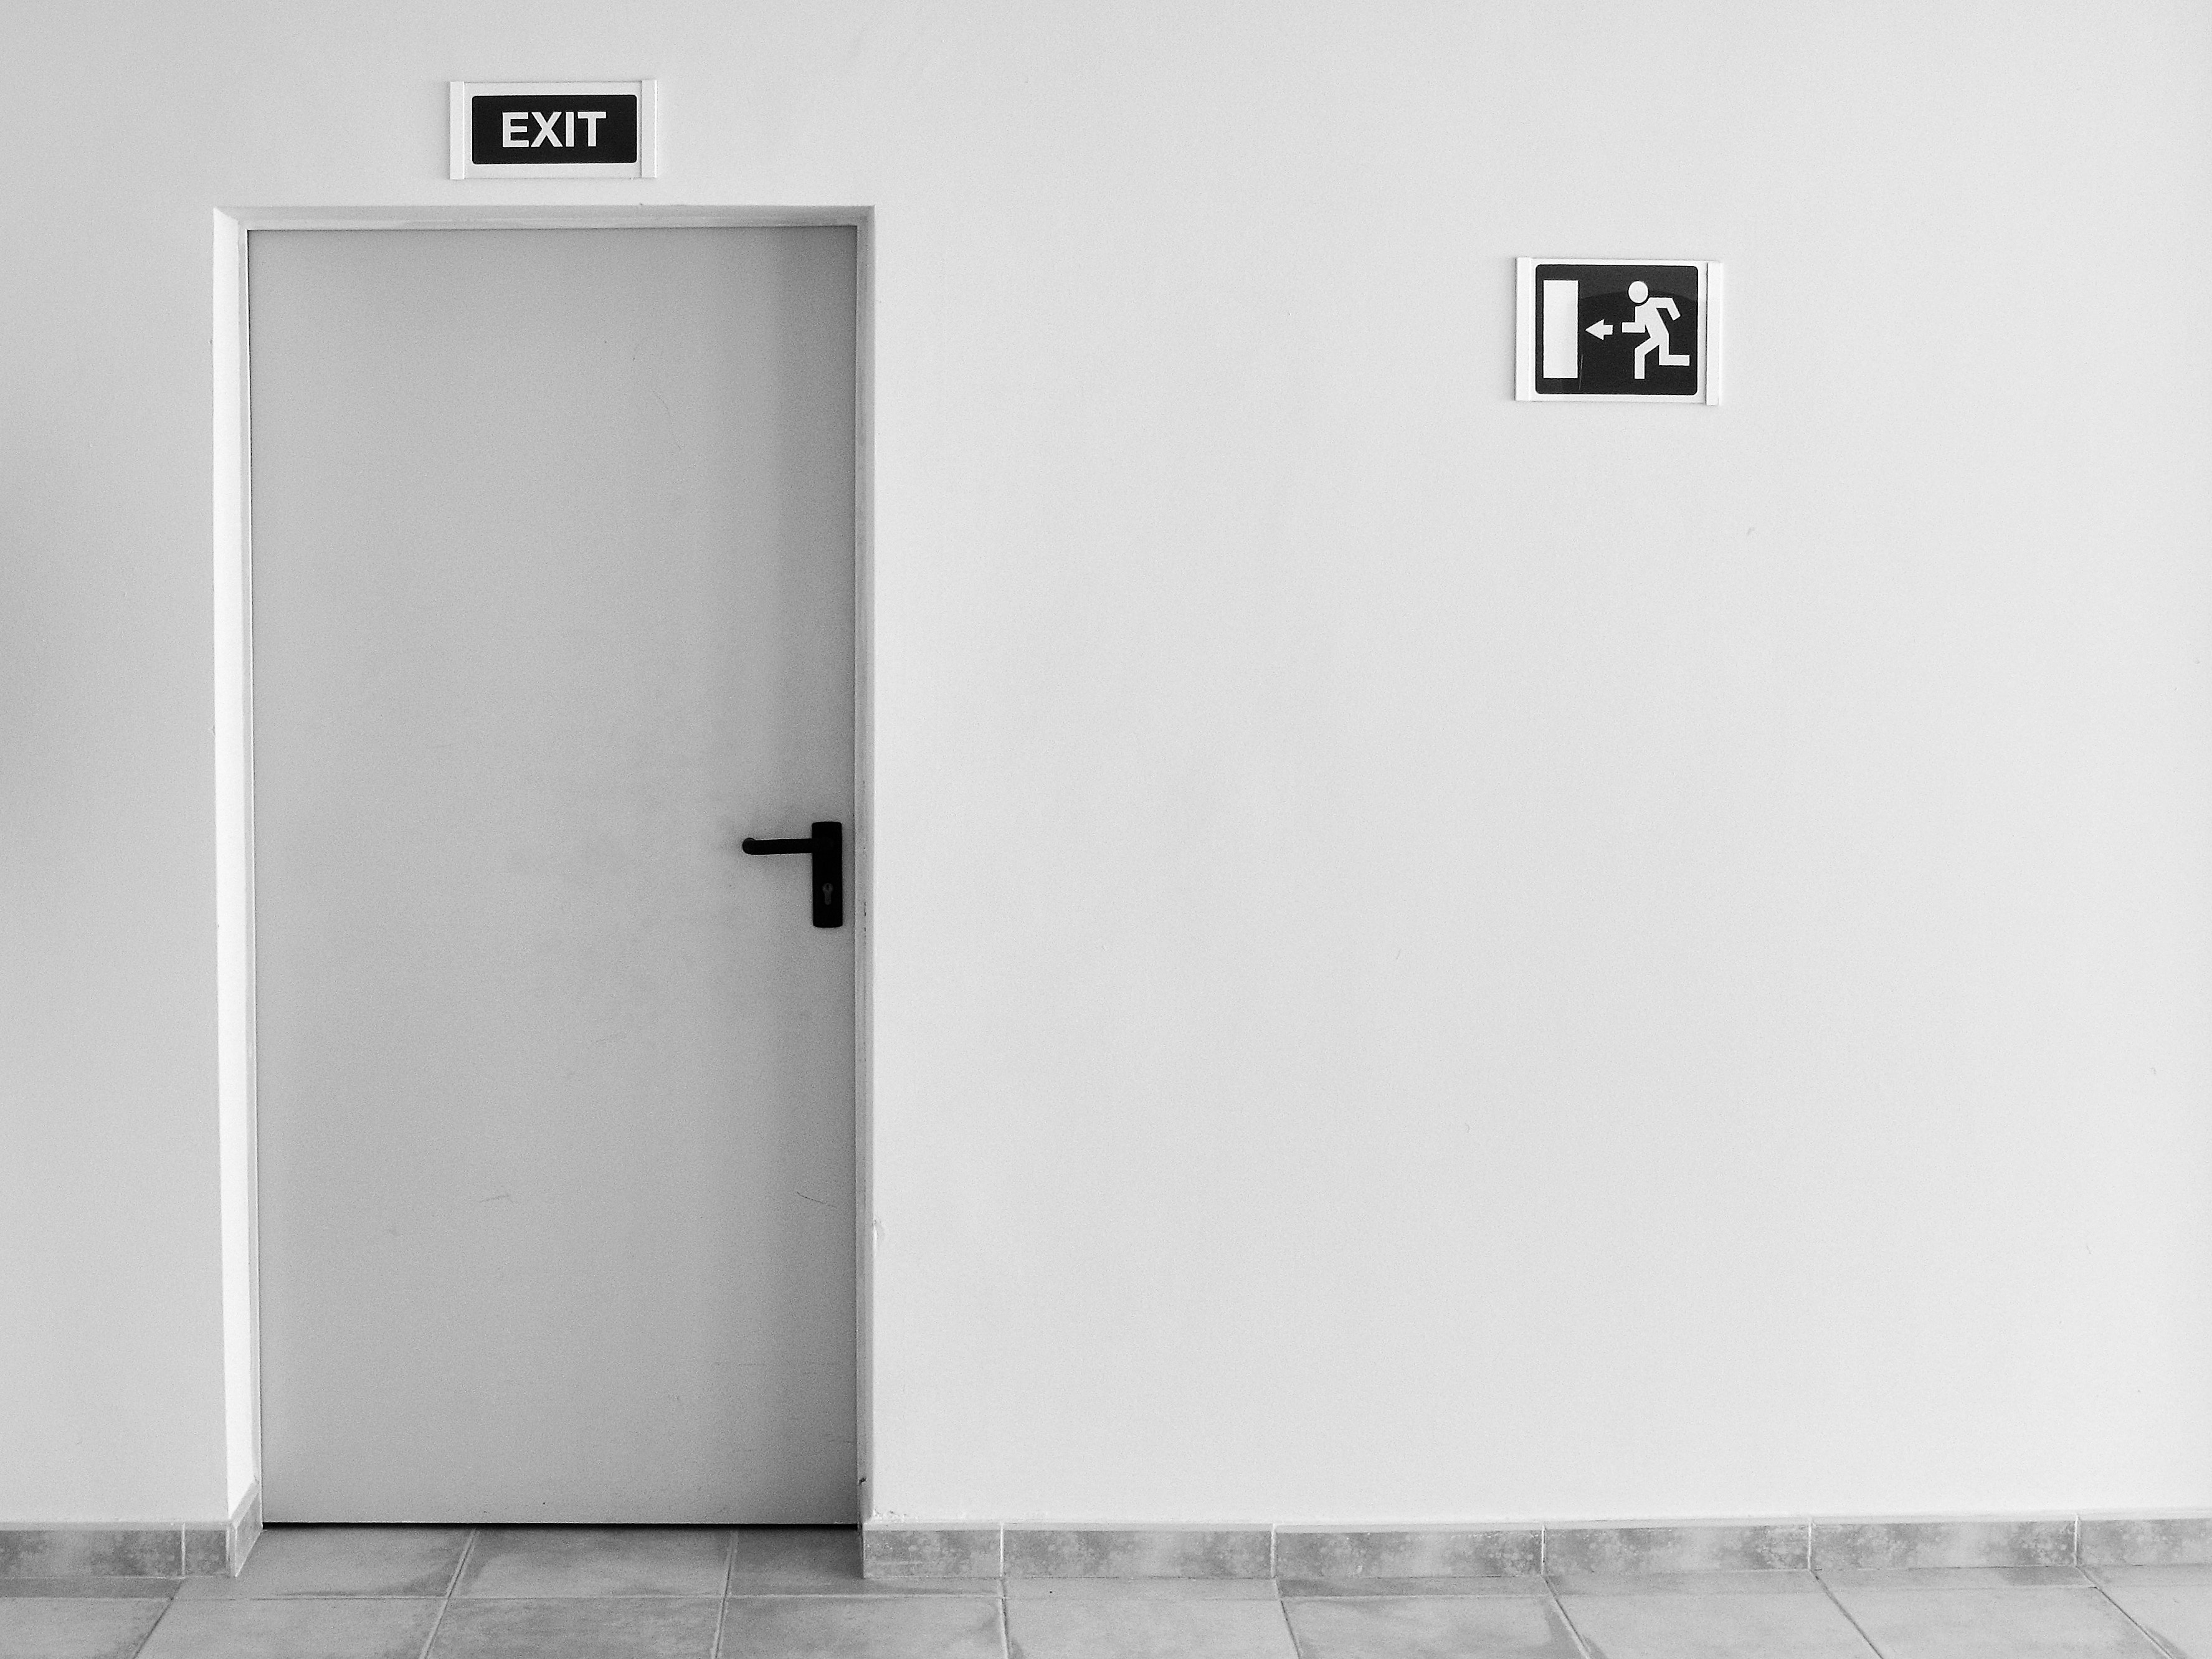 4 Reasons Why You should Carry Out Exit Interviews